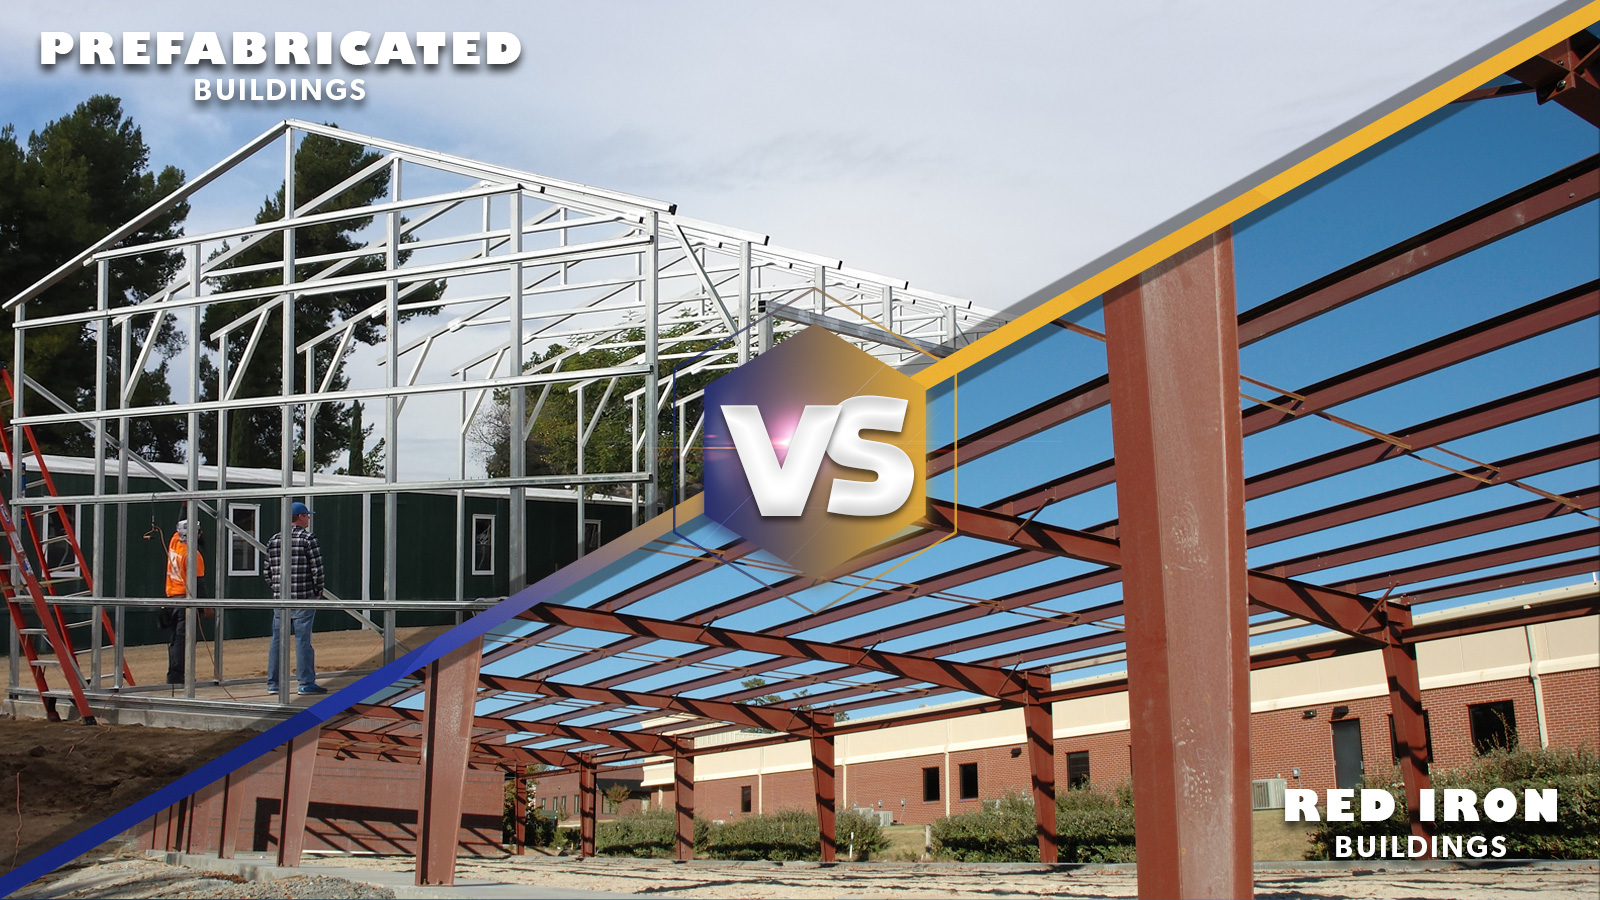 Prefabricated Metal Building vs Red Iron Building